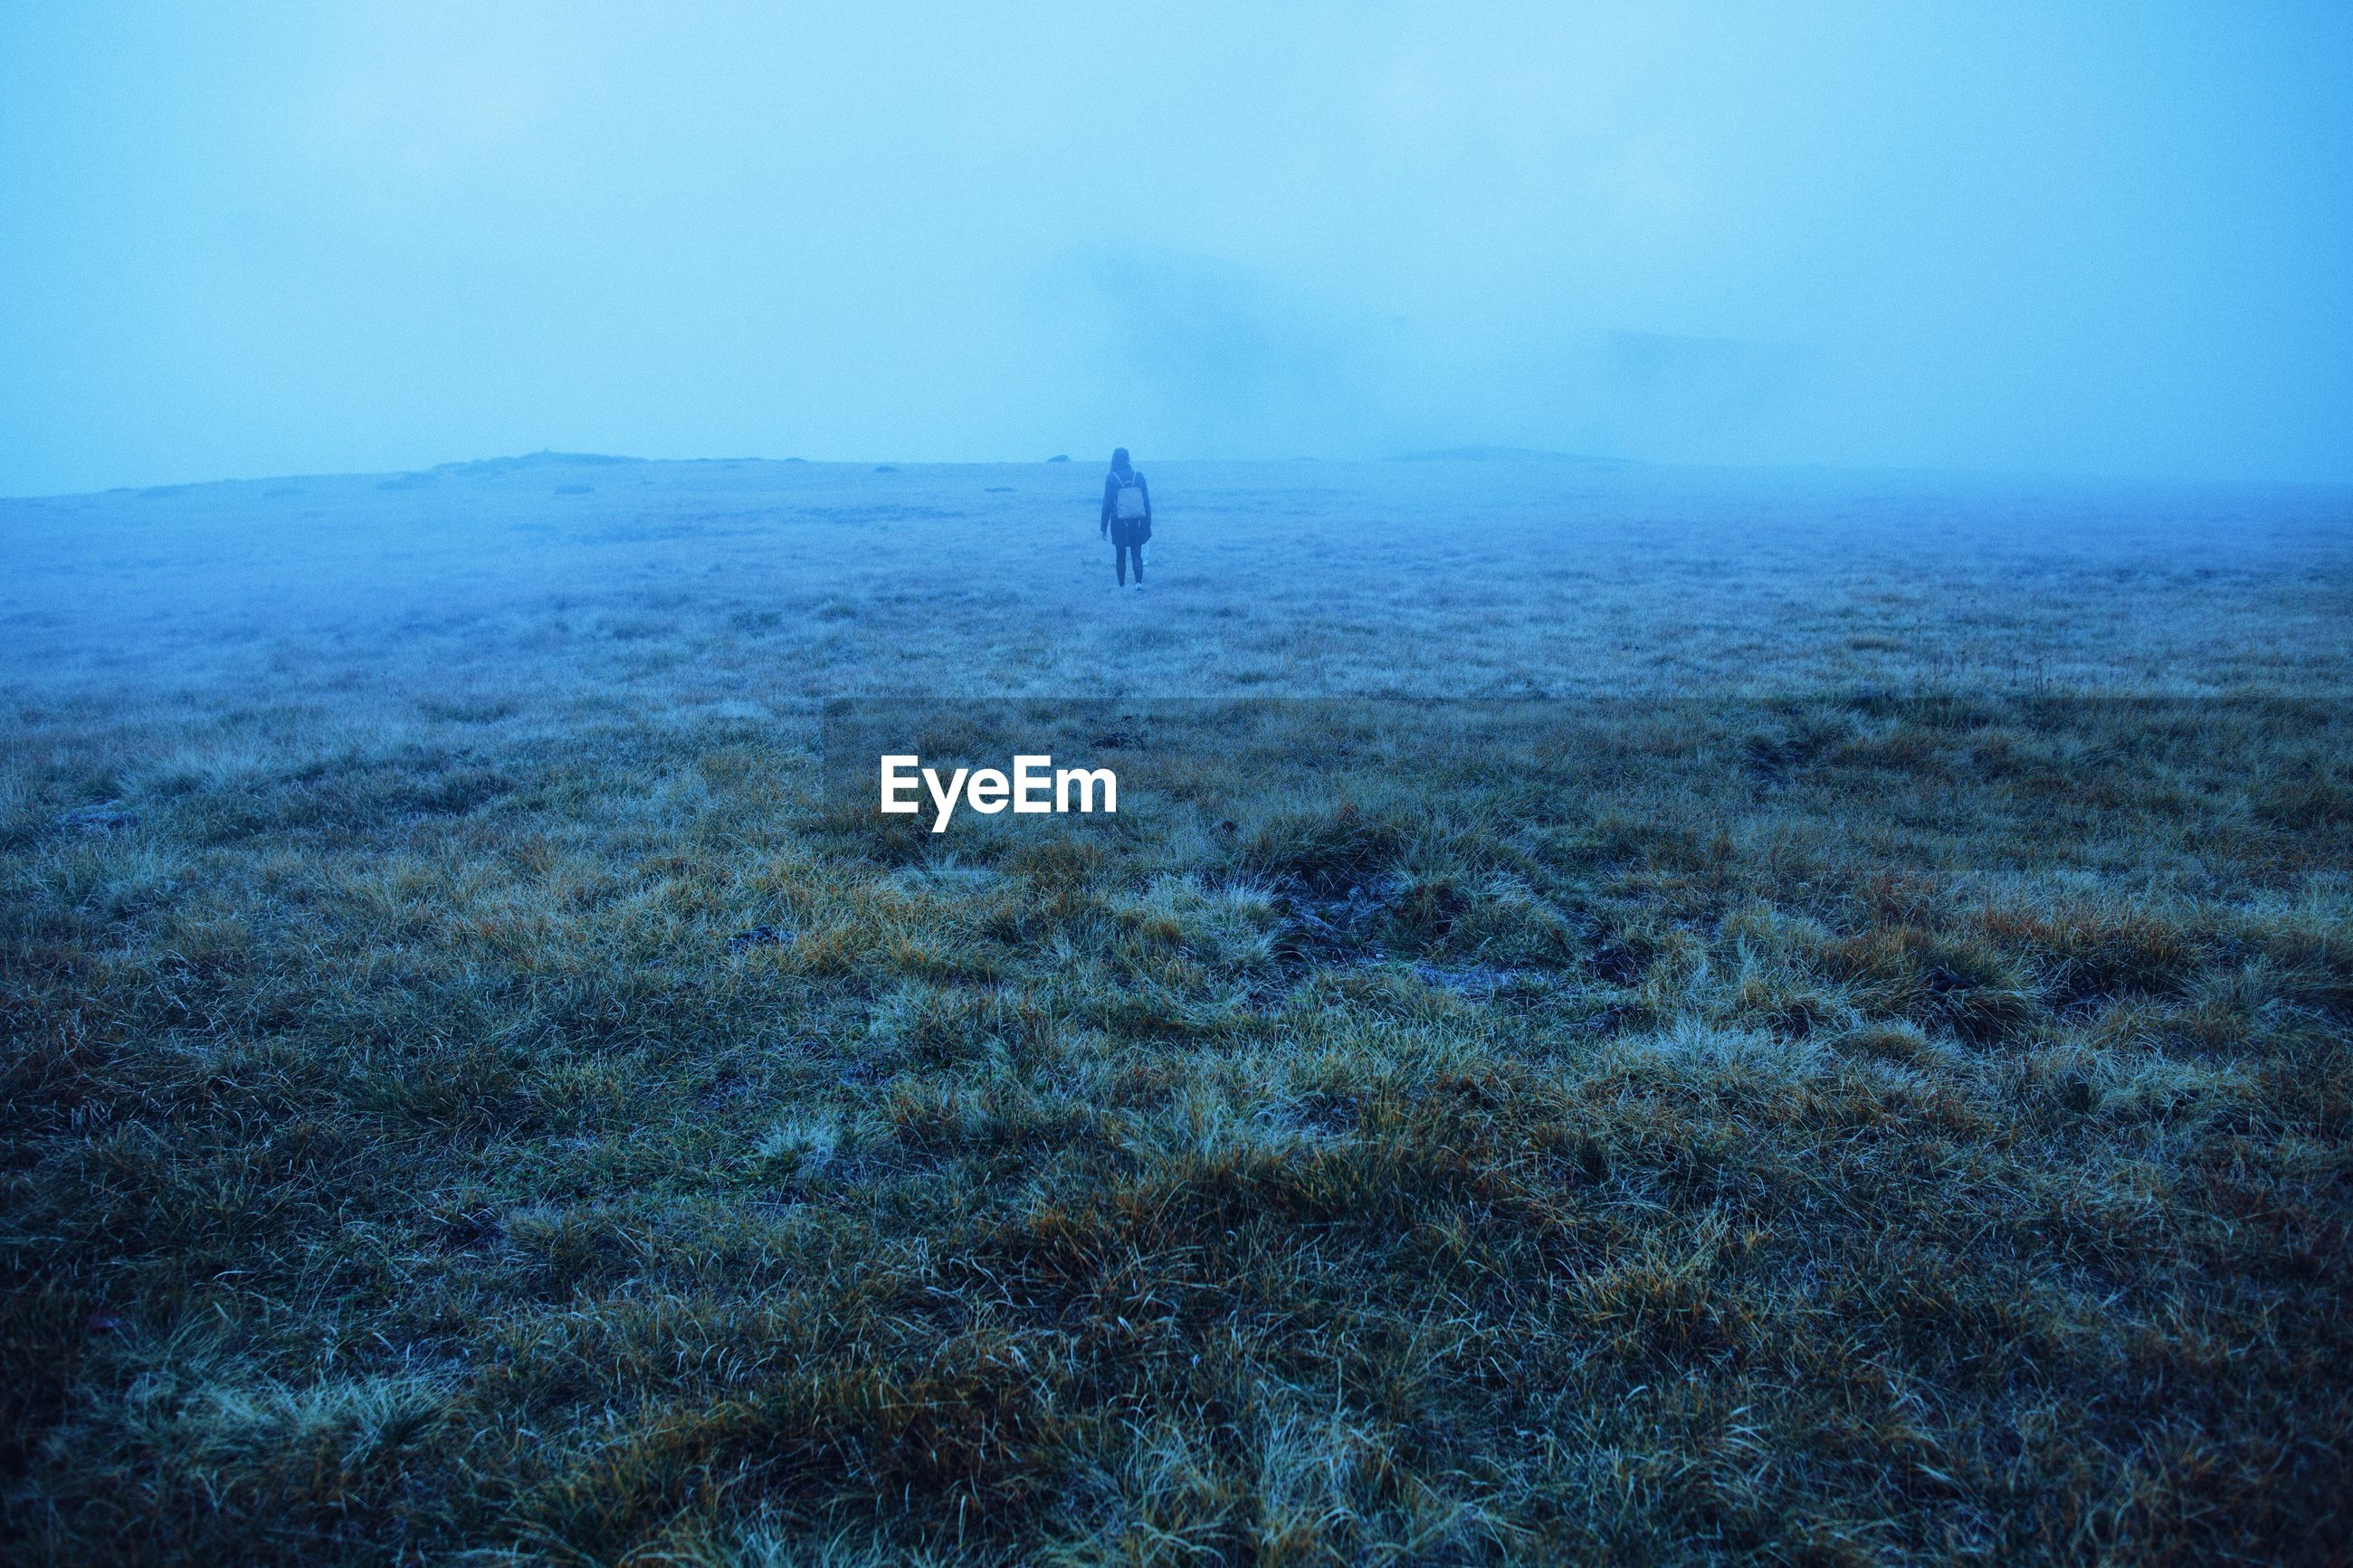 Woman with backpack standing on land during foggy weather